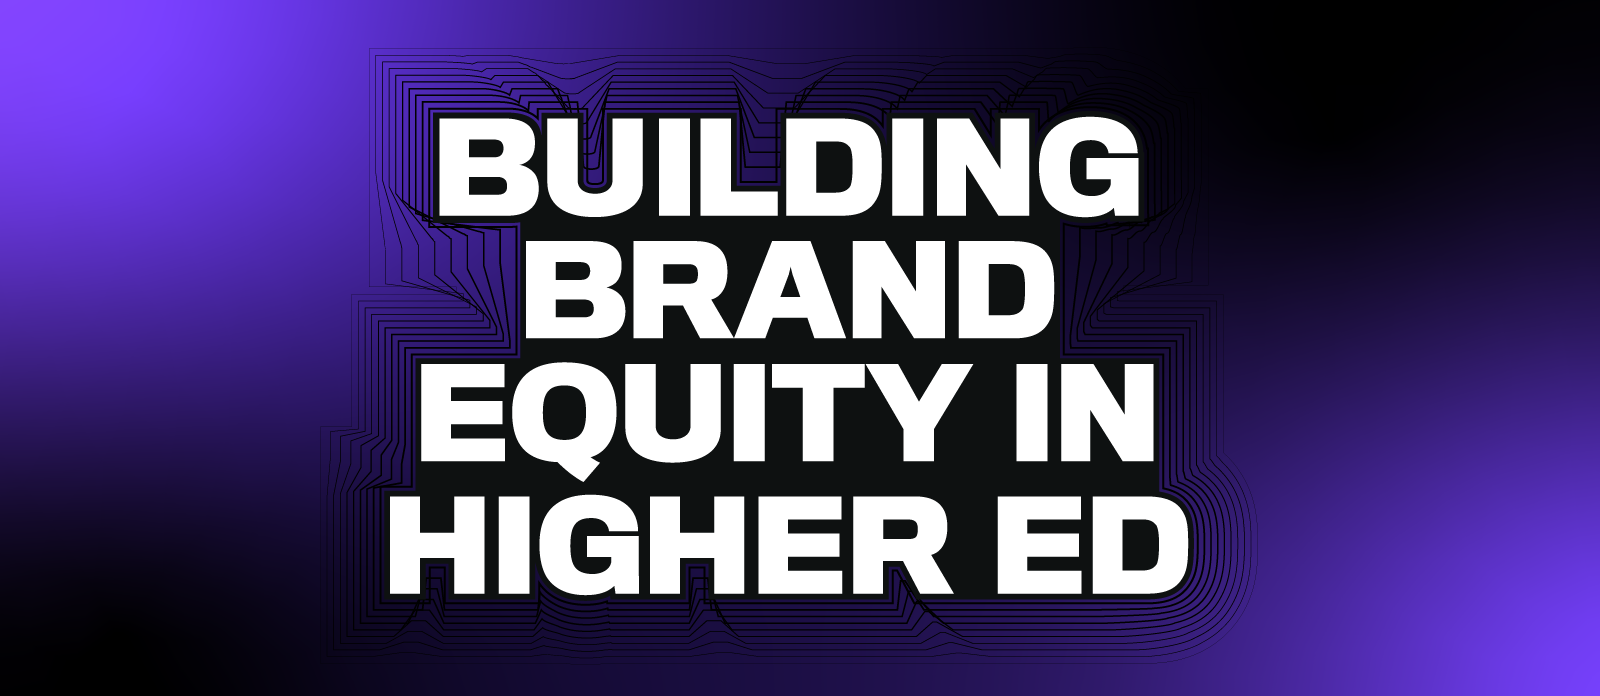 Building brand equity in Higher Ed